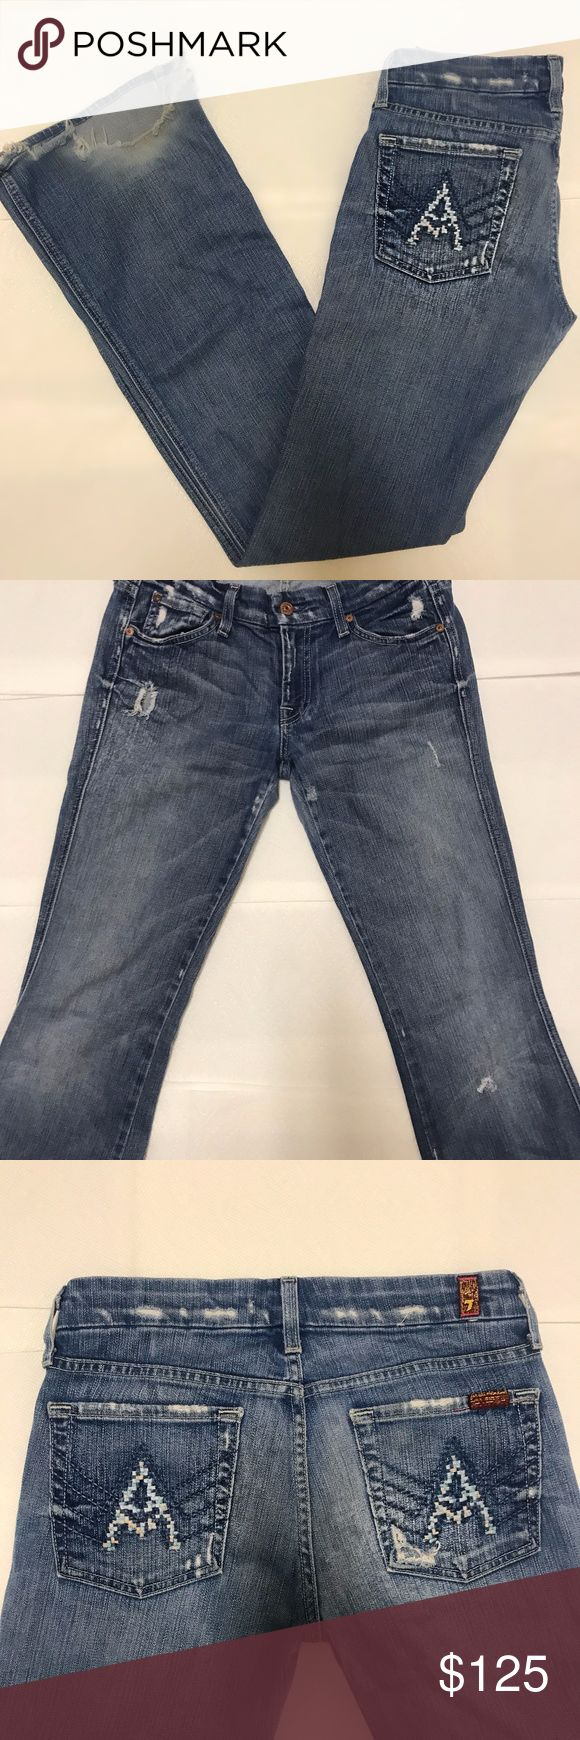 """7 For All Mankind Designer Women's Jeans They have zero stains with little visible wear. Wash bootcut flare with a slight grey tint and rare pink and blue embroidered """"A"""" design on back pockets. The rips shown are the BACK of the jeans not the front. I personally think they give a grunge hippy look to the jeans, however they can also be tailored in order to change it. 7 for all Mankind Jeans Boot Cut"""